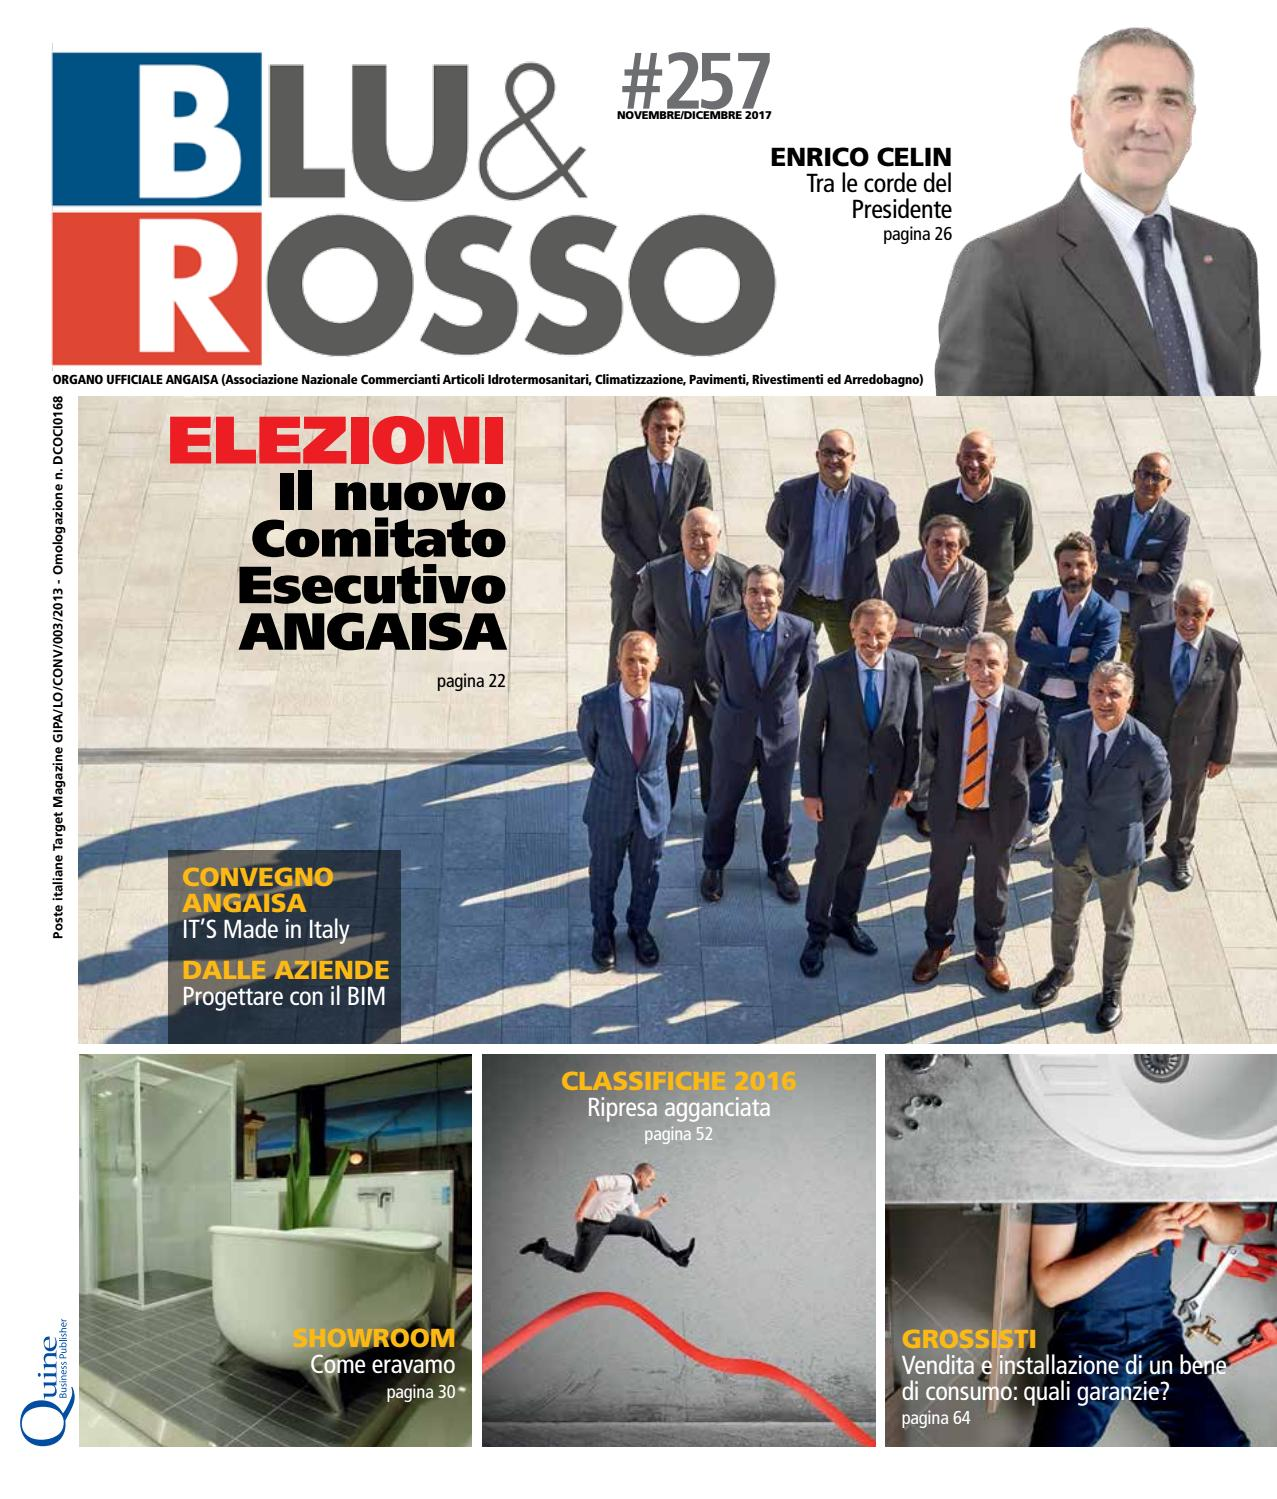 5b629edafe BLU&ROSSO n°257 - Novembre/Dicembre by Quine Business Publisher - issuu